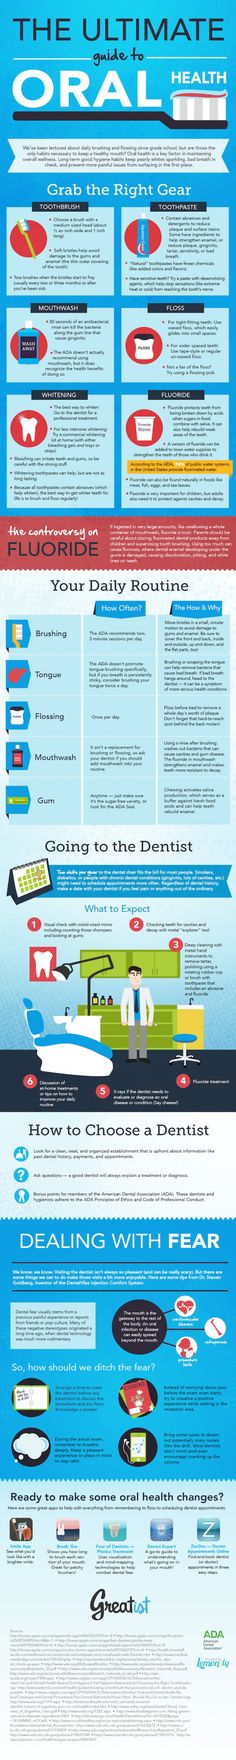 The Ultimate Guide to Oral Health Infographic #dentistry